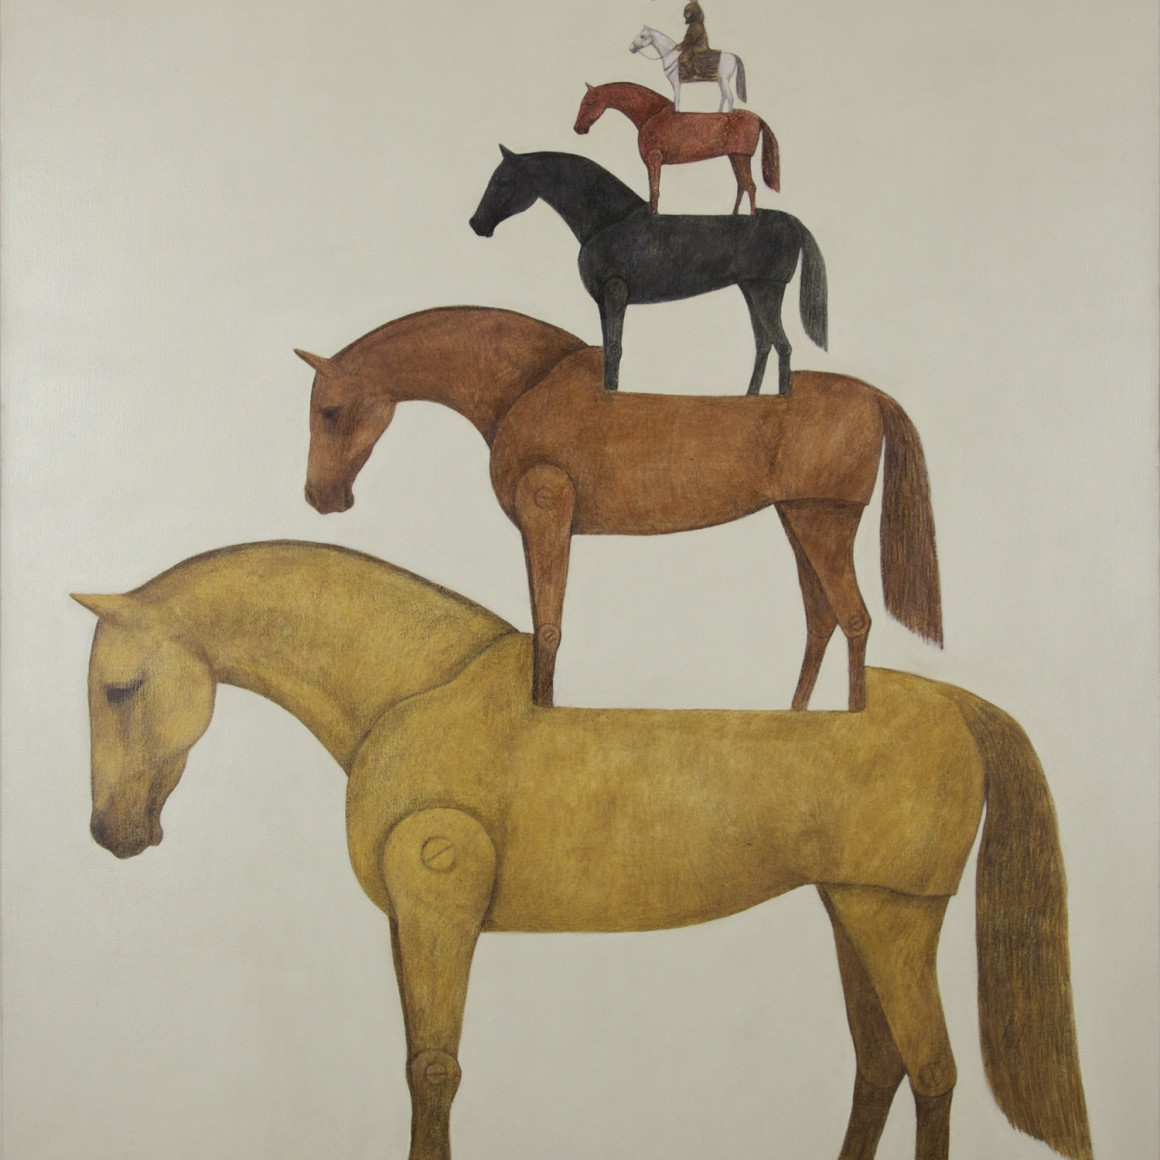 Nazar Yahya, Arabic Narrative, 2014